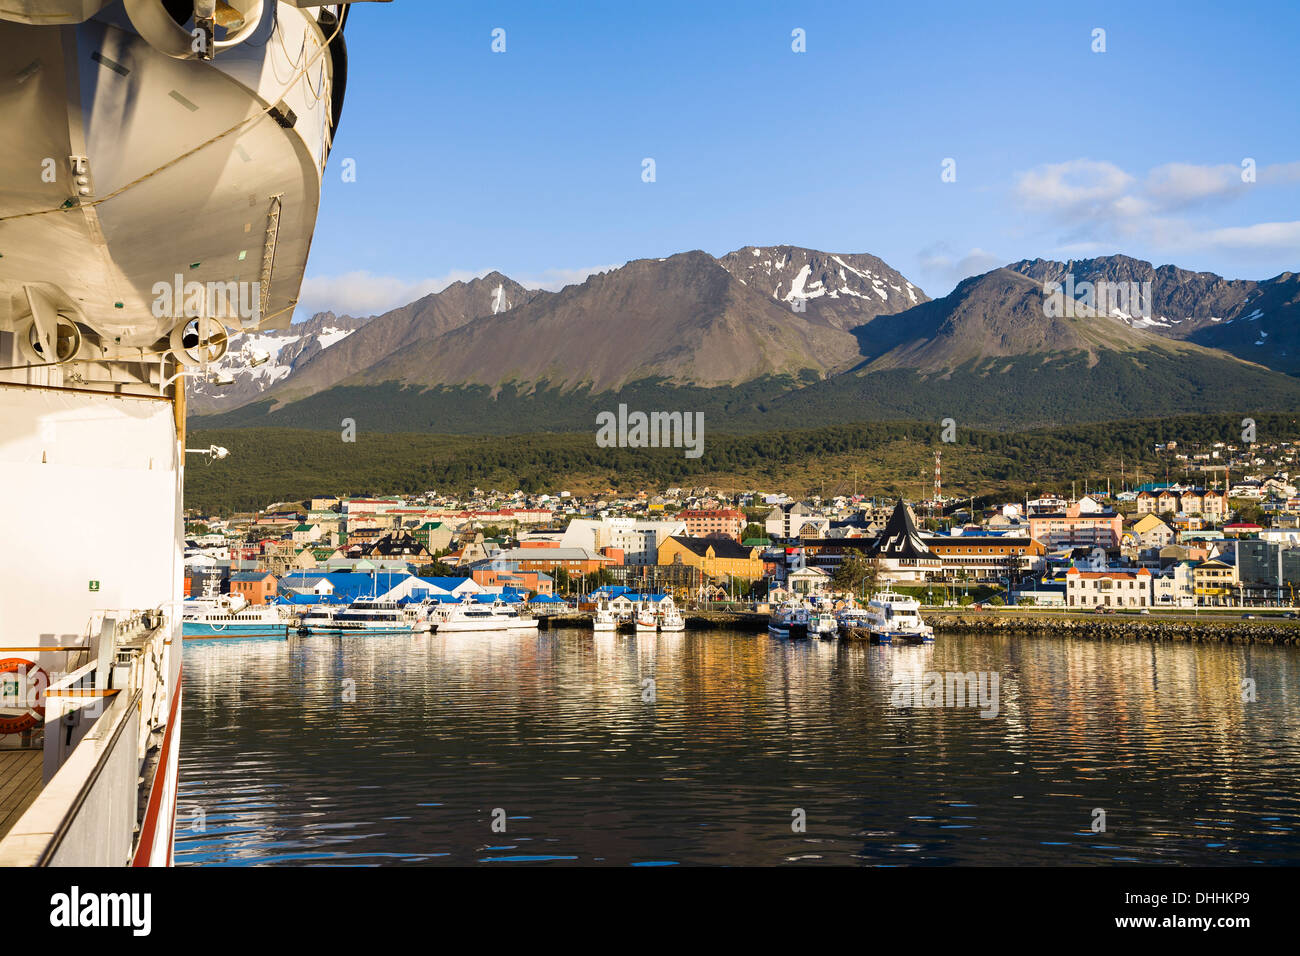 Ushuaia harbour, southernmost citiy of Argentina, Beagle-Channel, Tierra del Fuego, Argentina, South America - Stock Image